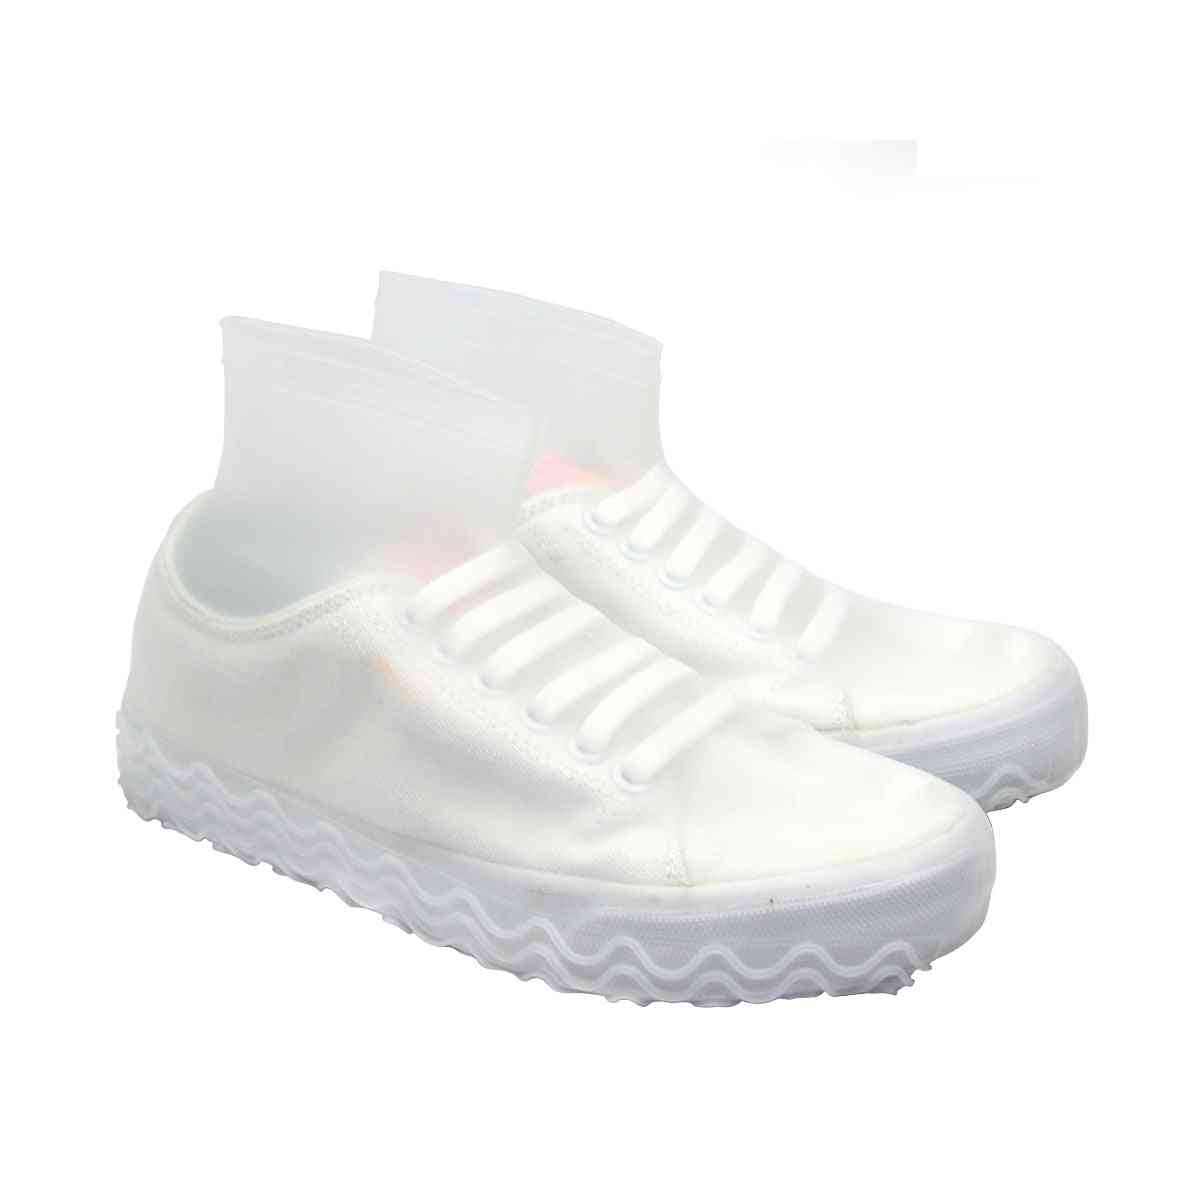 Silicone Reusable Latex Waterproof Rain Shoes Covers, Slip-resistant Rubber